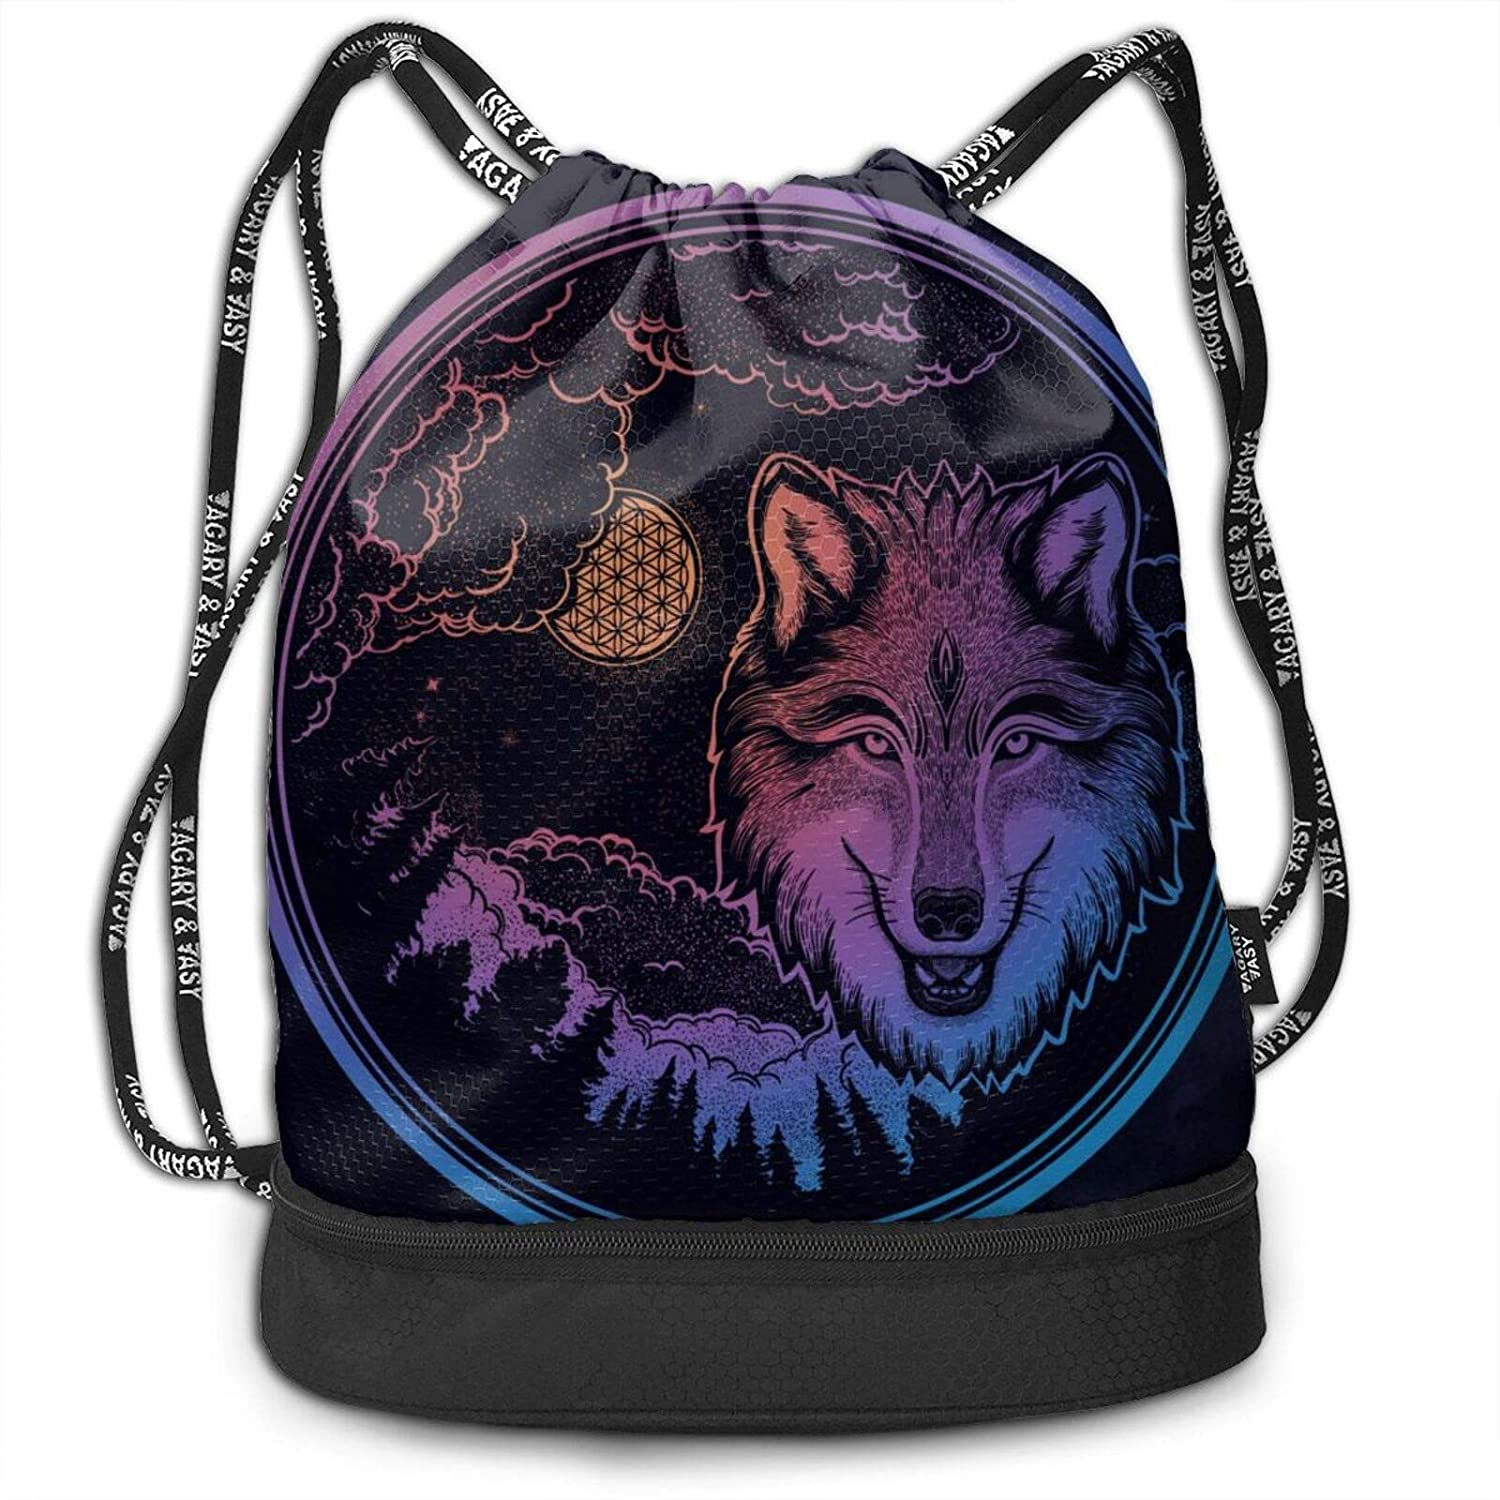 D-WOLVES Graphic Drawstring Bags Basketball Bulk Large Size Drawstring Backpack With Zipper Compartment Cinch Fashion Bags With Pattern Dreamy Wolf Mountain Landscape